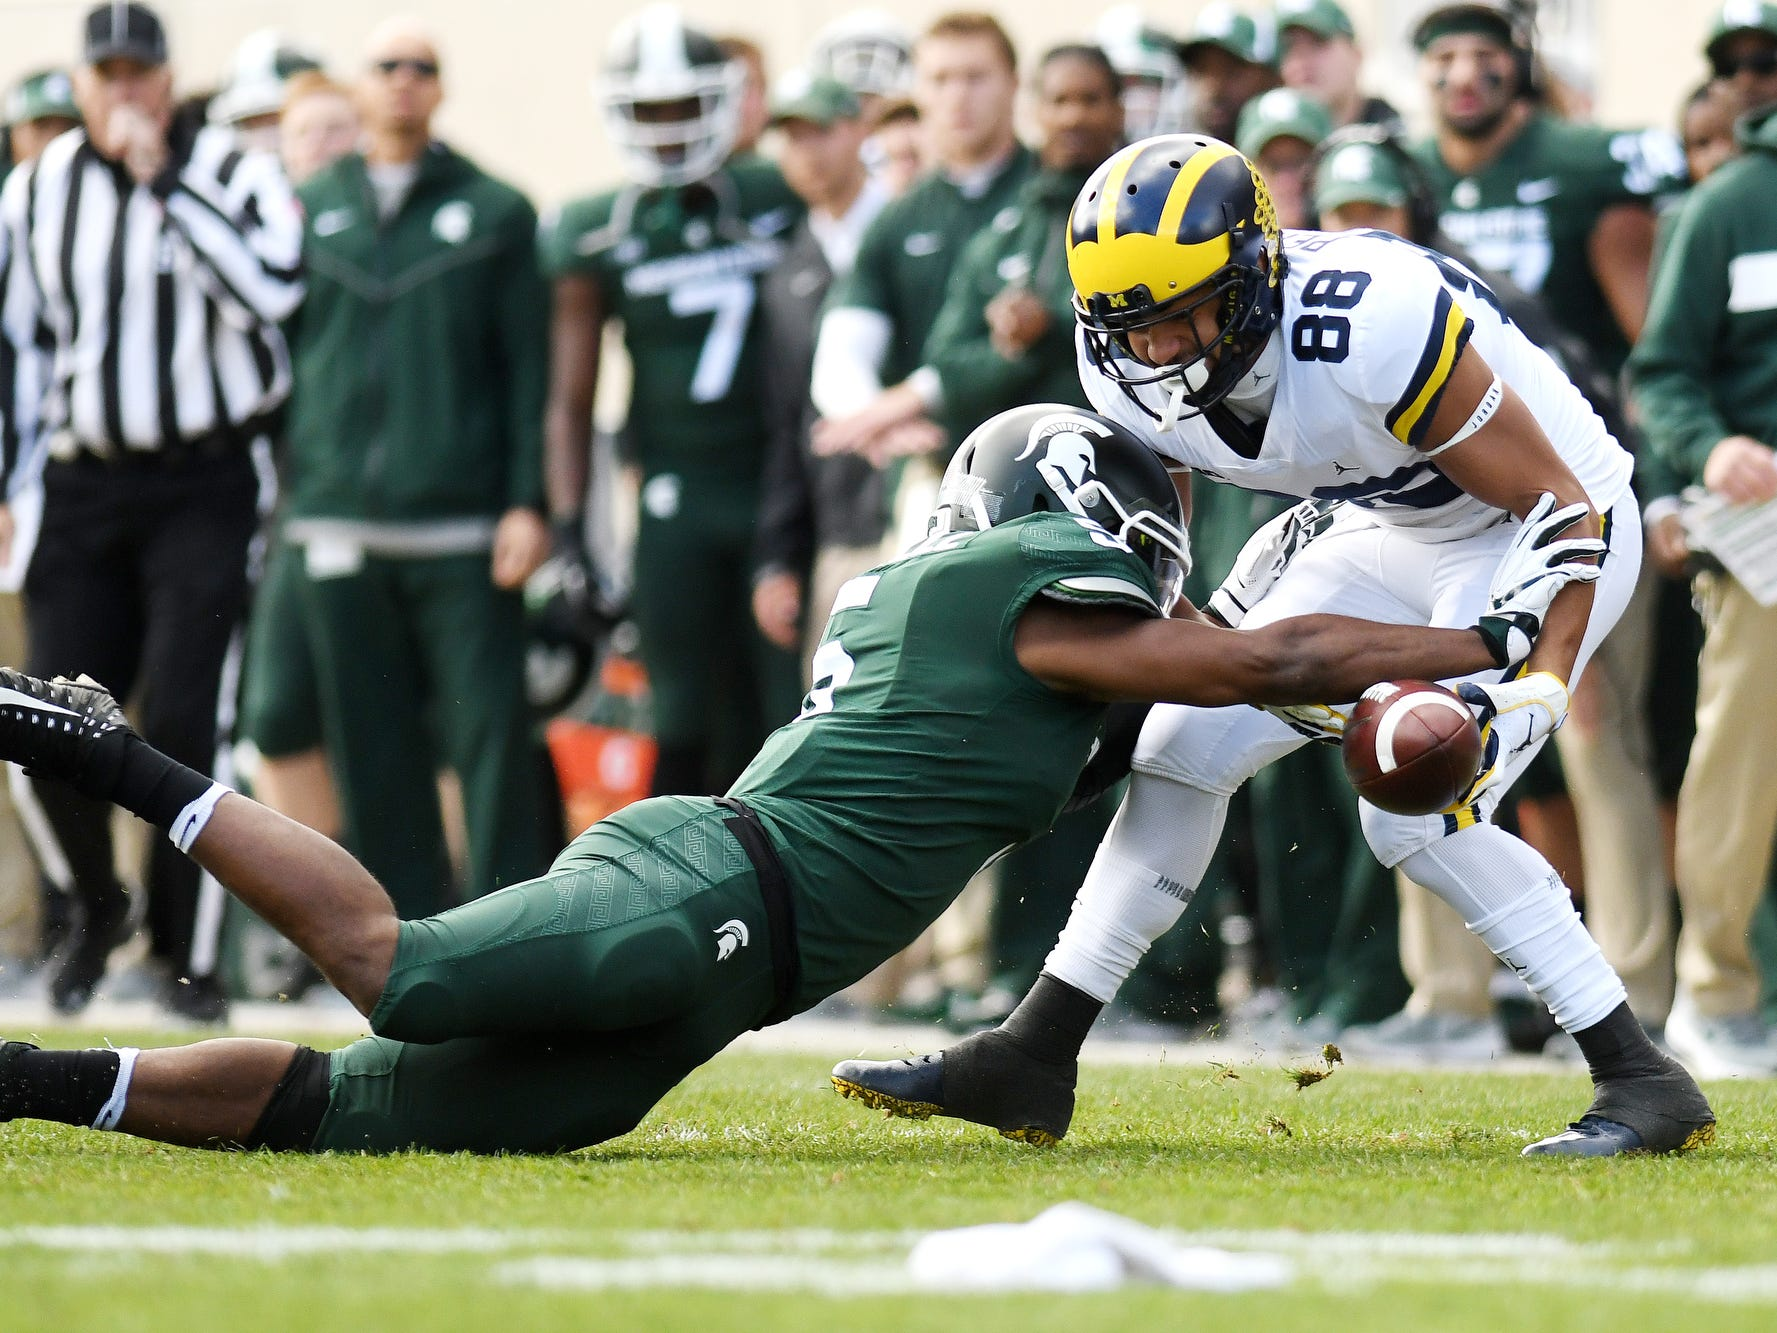 Michigan State's Andrew Dowell, left, breaks up a pass intended for Michigan's Grant Perry during the first quarter on Saturday, Oct. 20, 2018, in East Lansing.